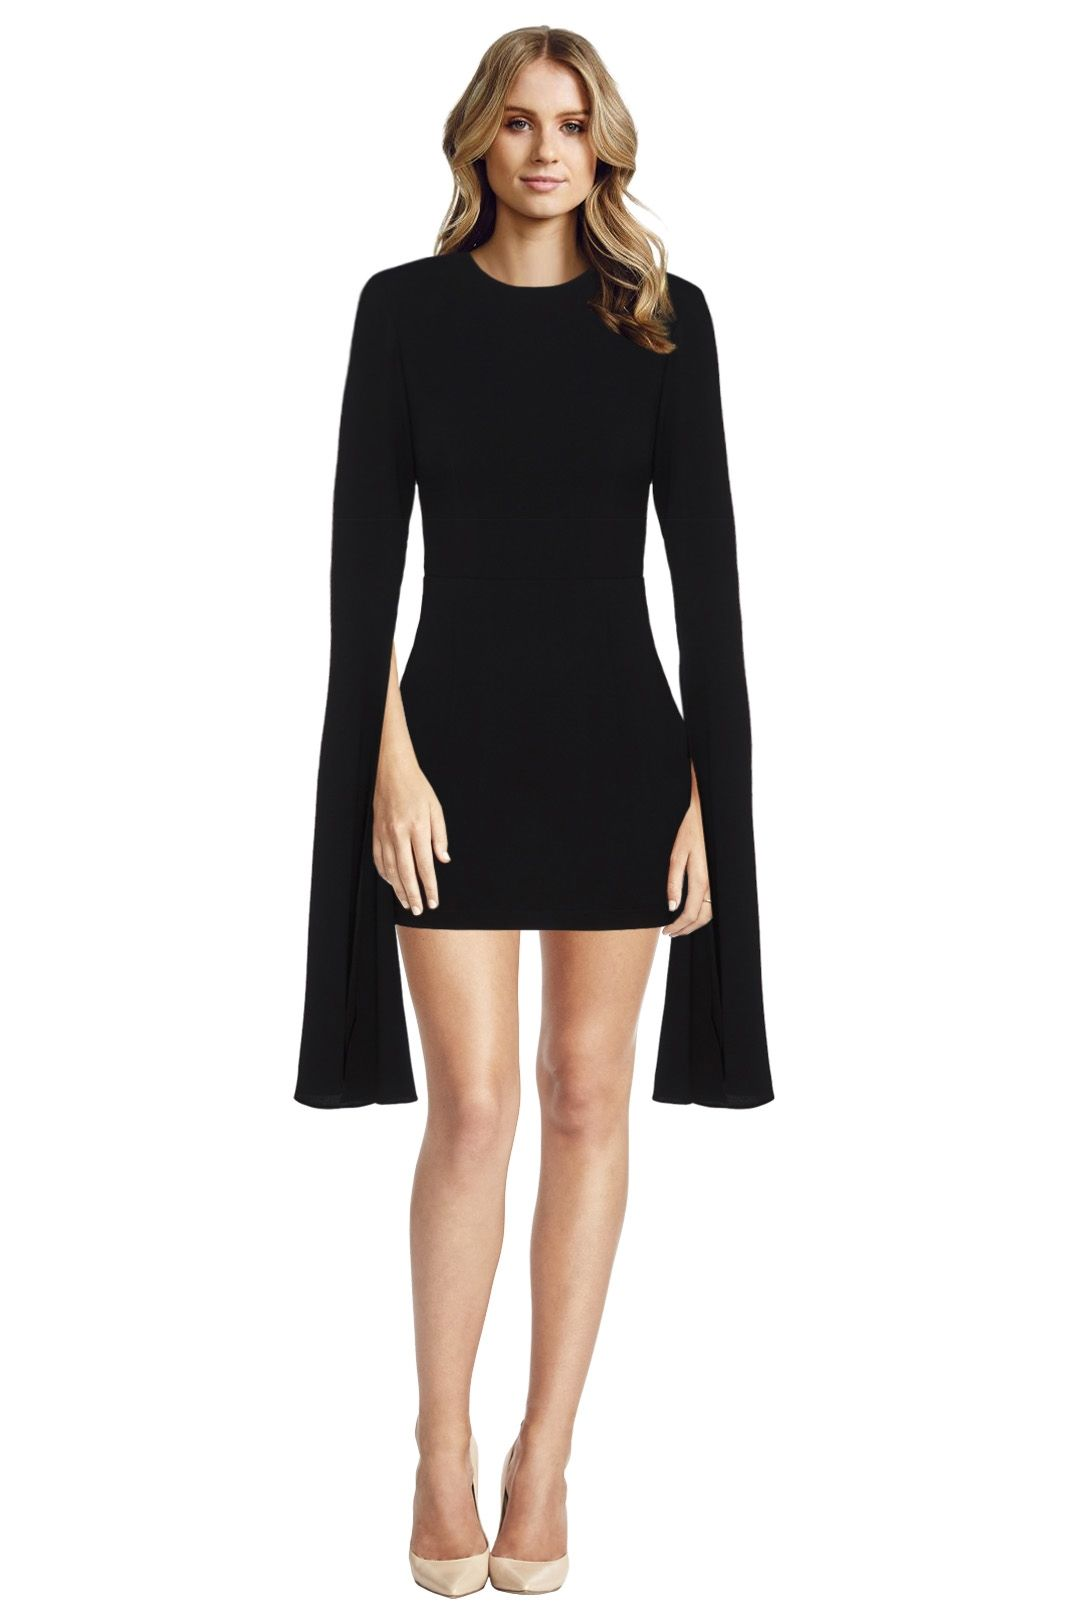 Alex Perry - Jade Dress - Black - Front